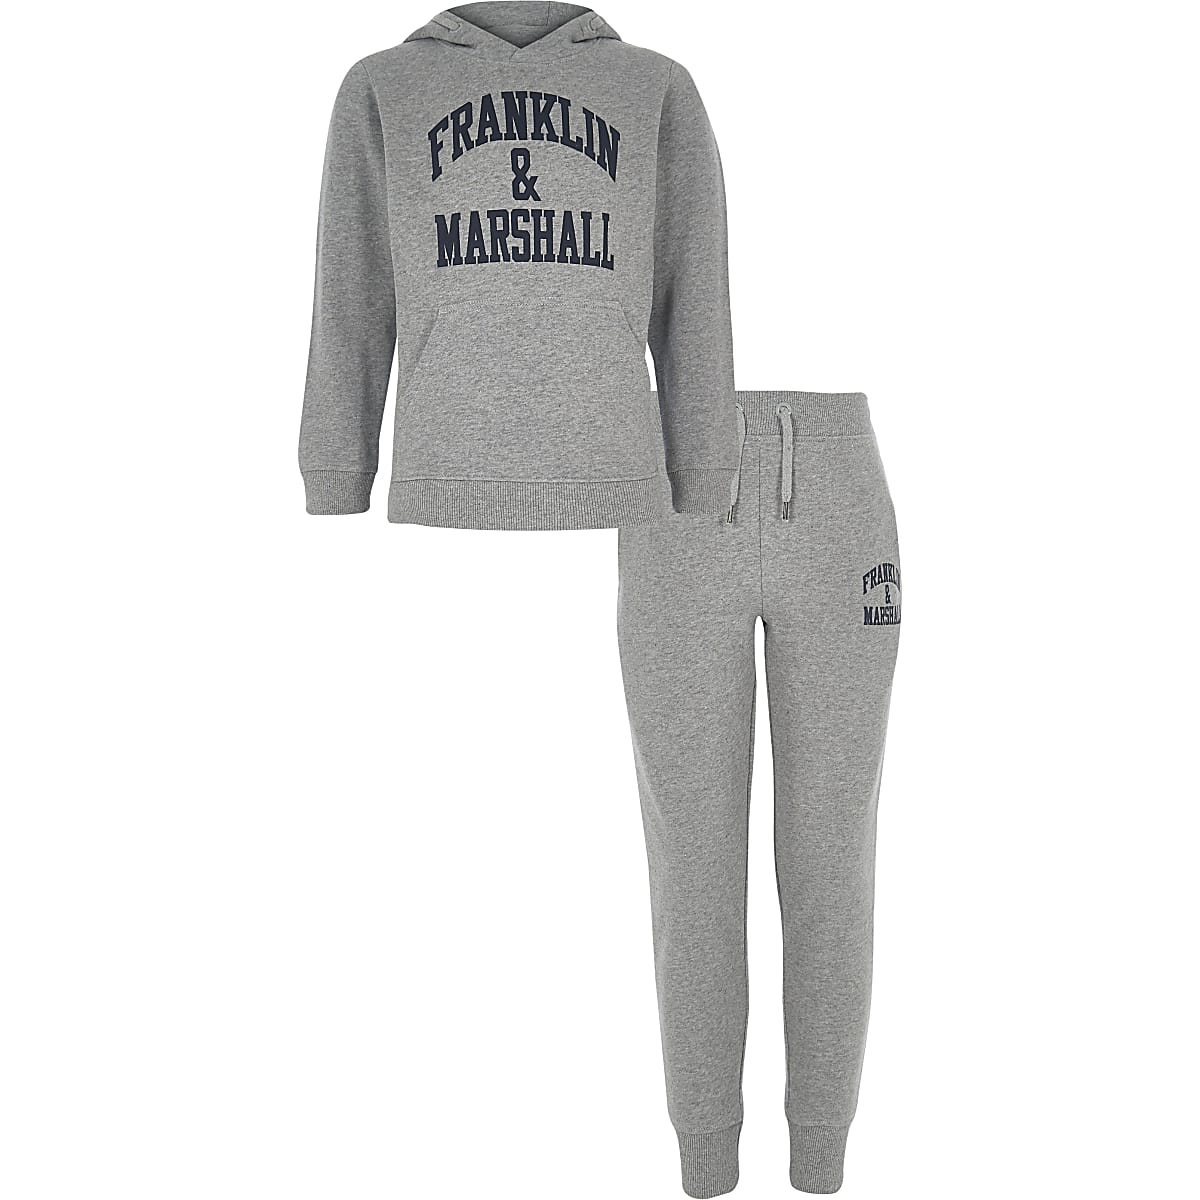 Boys Franklin & Marshall grey hoodie outfit